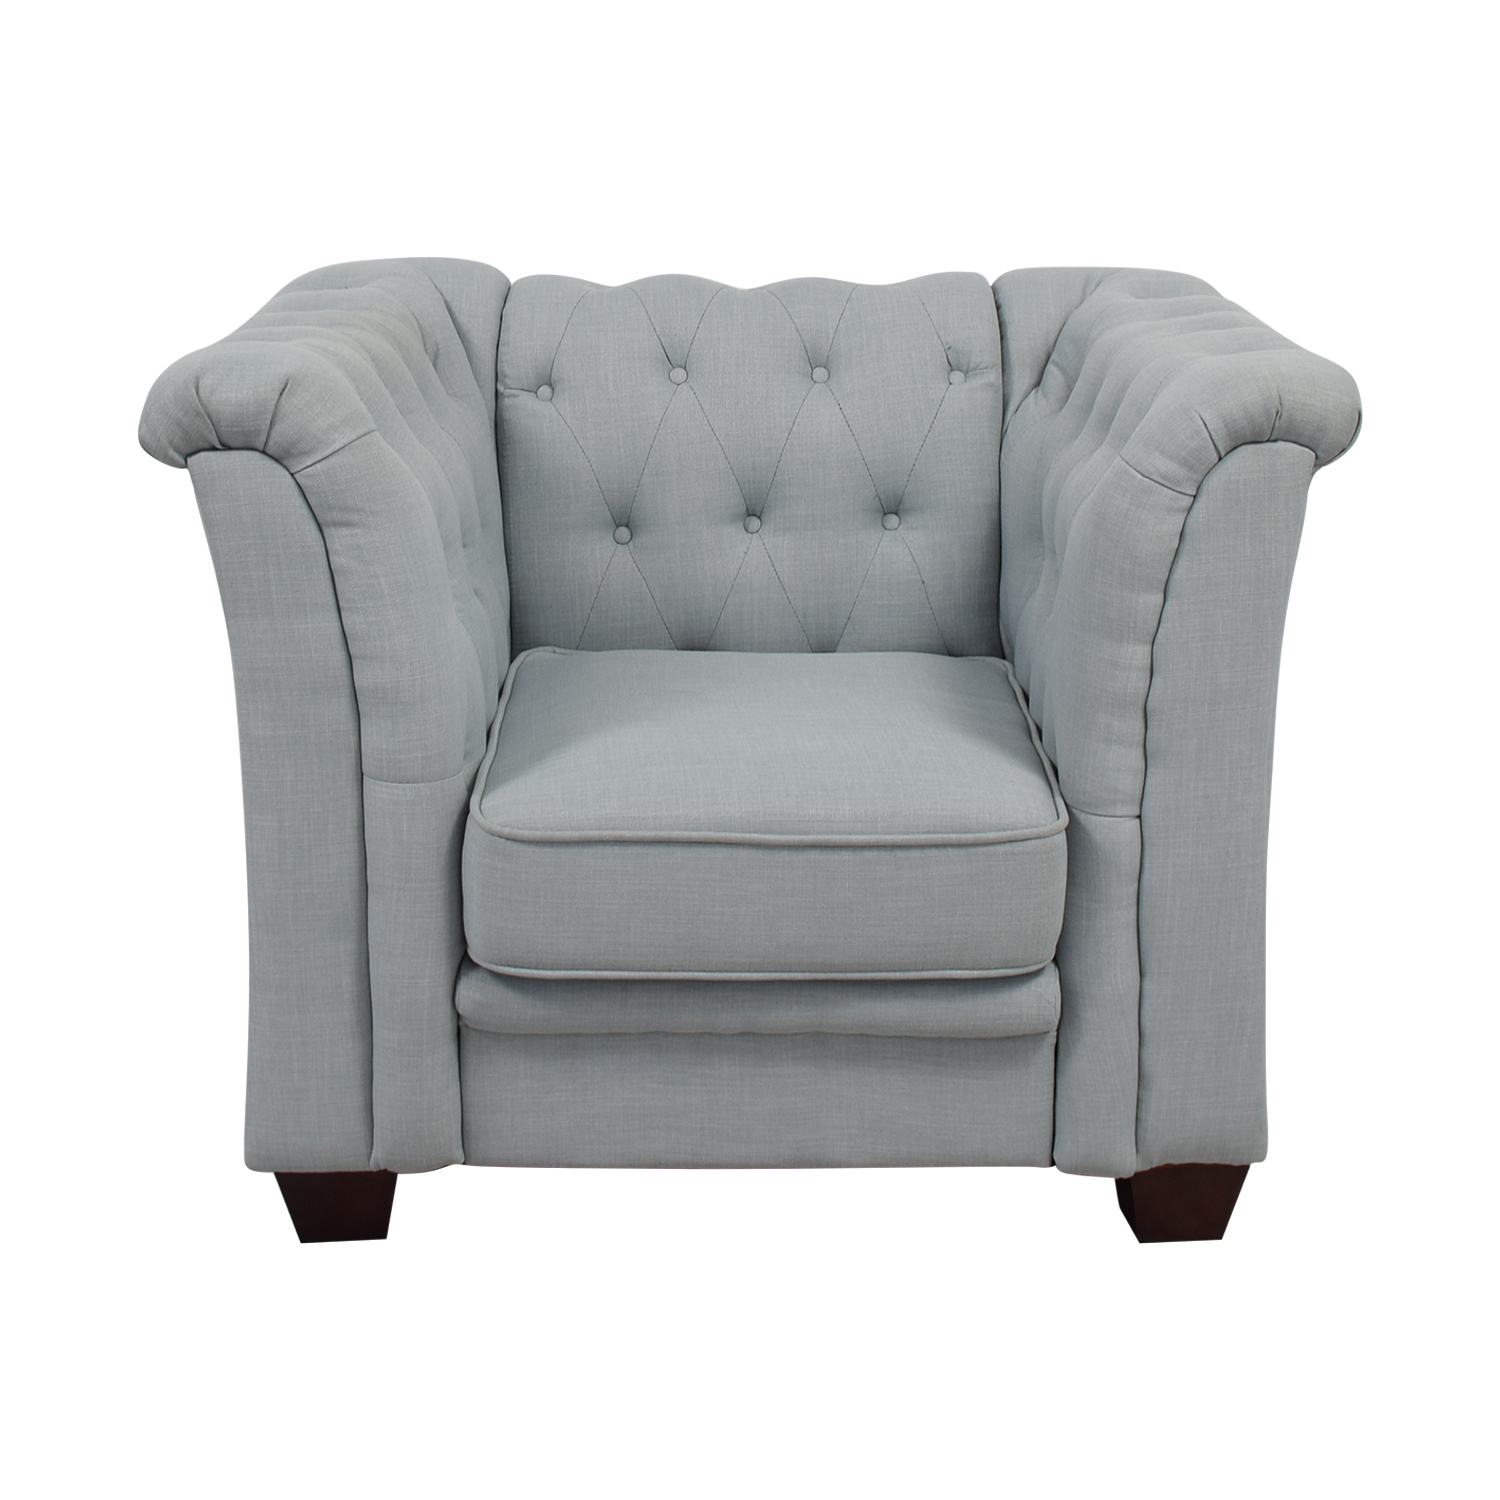 Delvi Furniture Delvi Furniture Sky Blue Tufted Accent Chair dimensions